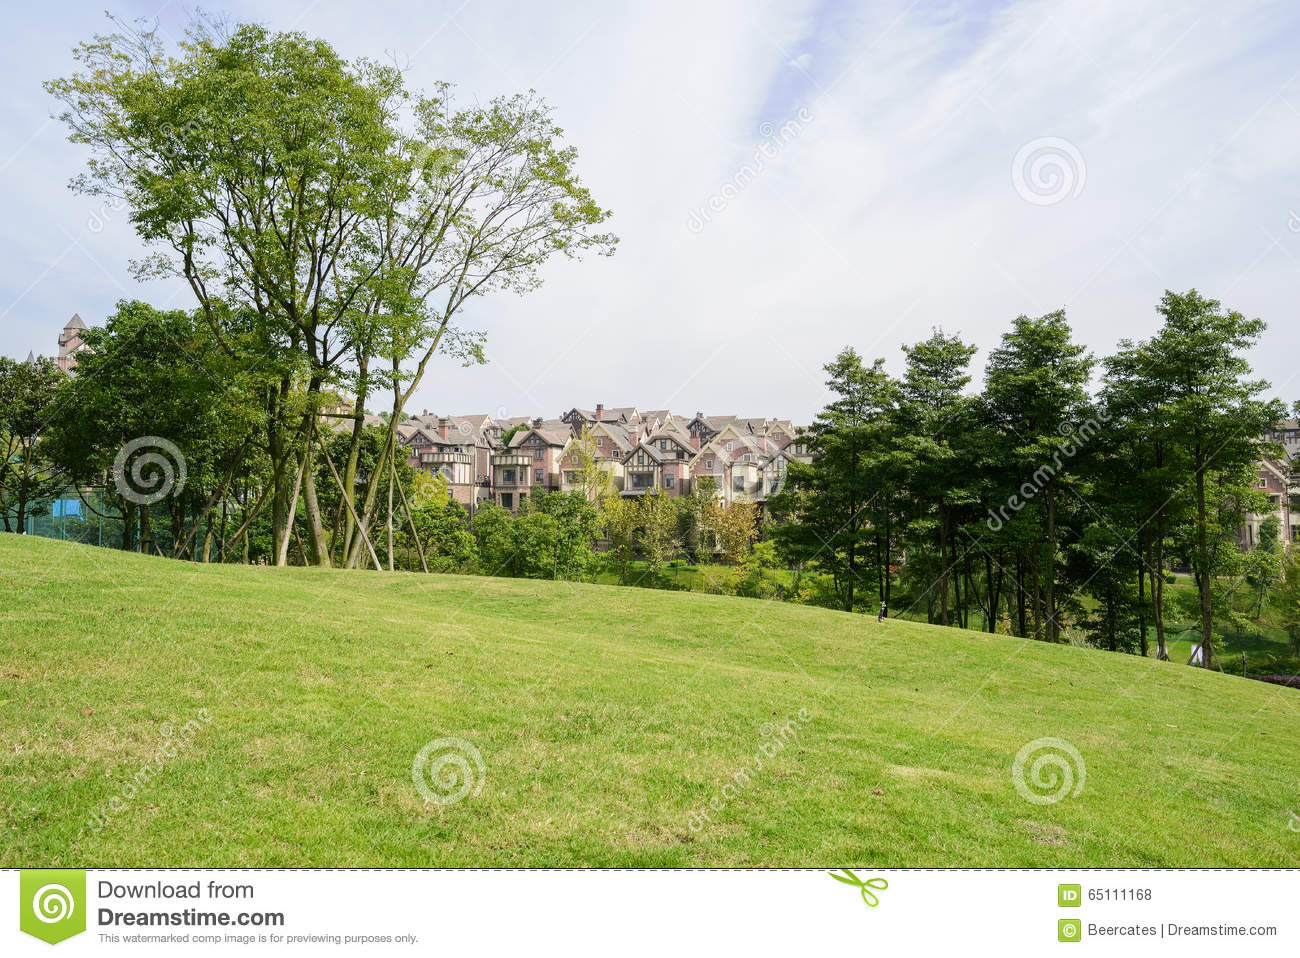 Landscaping A Sunny Hillside : Grassy lawn on the hillside near dwelling houses in sunny autumn